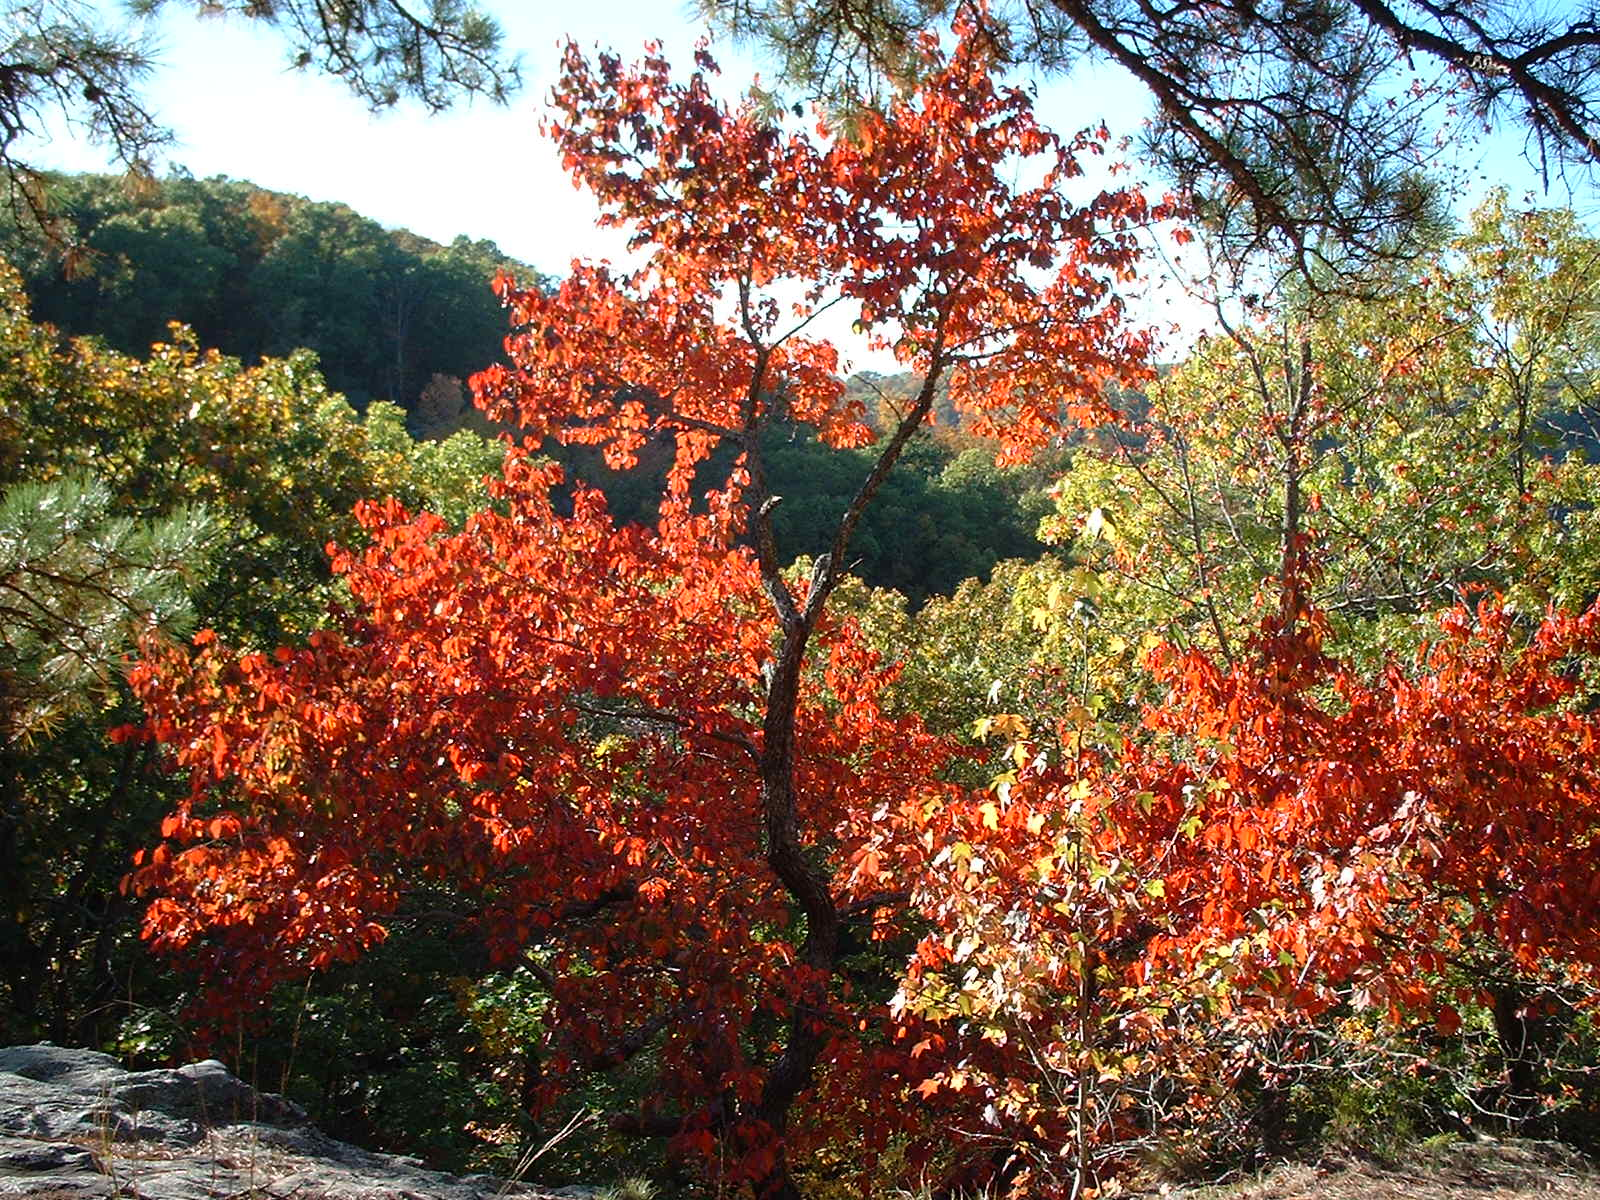 Fall Tree in the Ozarks